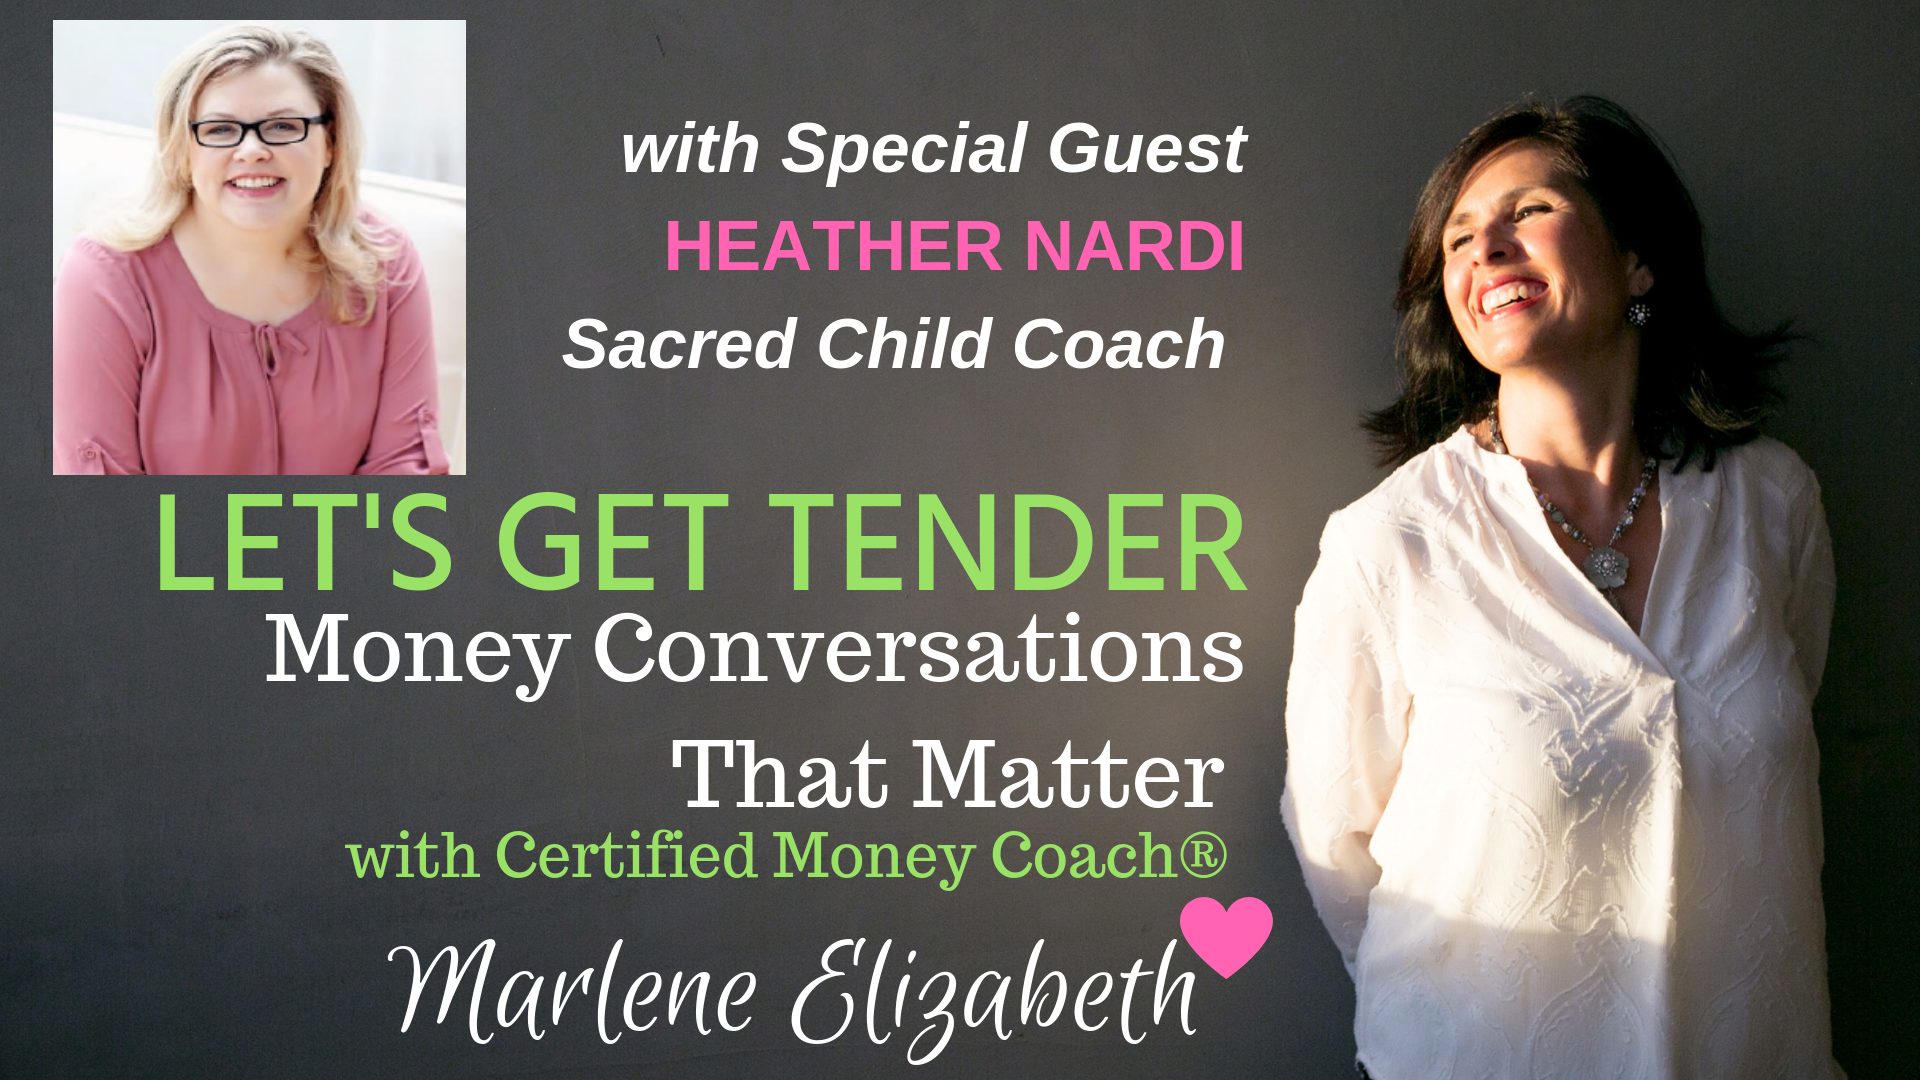 Let's Get Tender with Special Guest Heather Nardi - Get ready for a tender money conversation on the power of your intuition and owning your financial story with Heather.